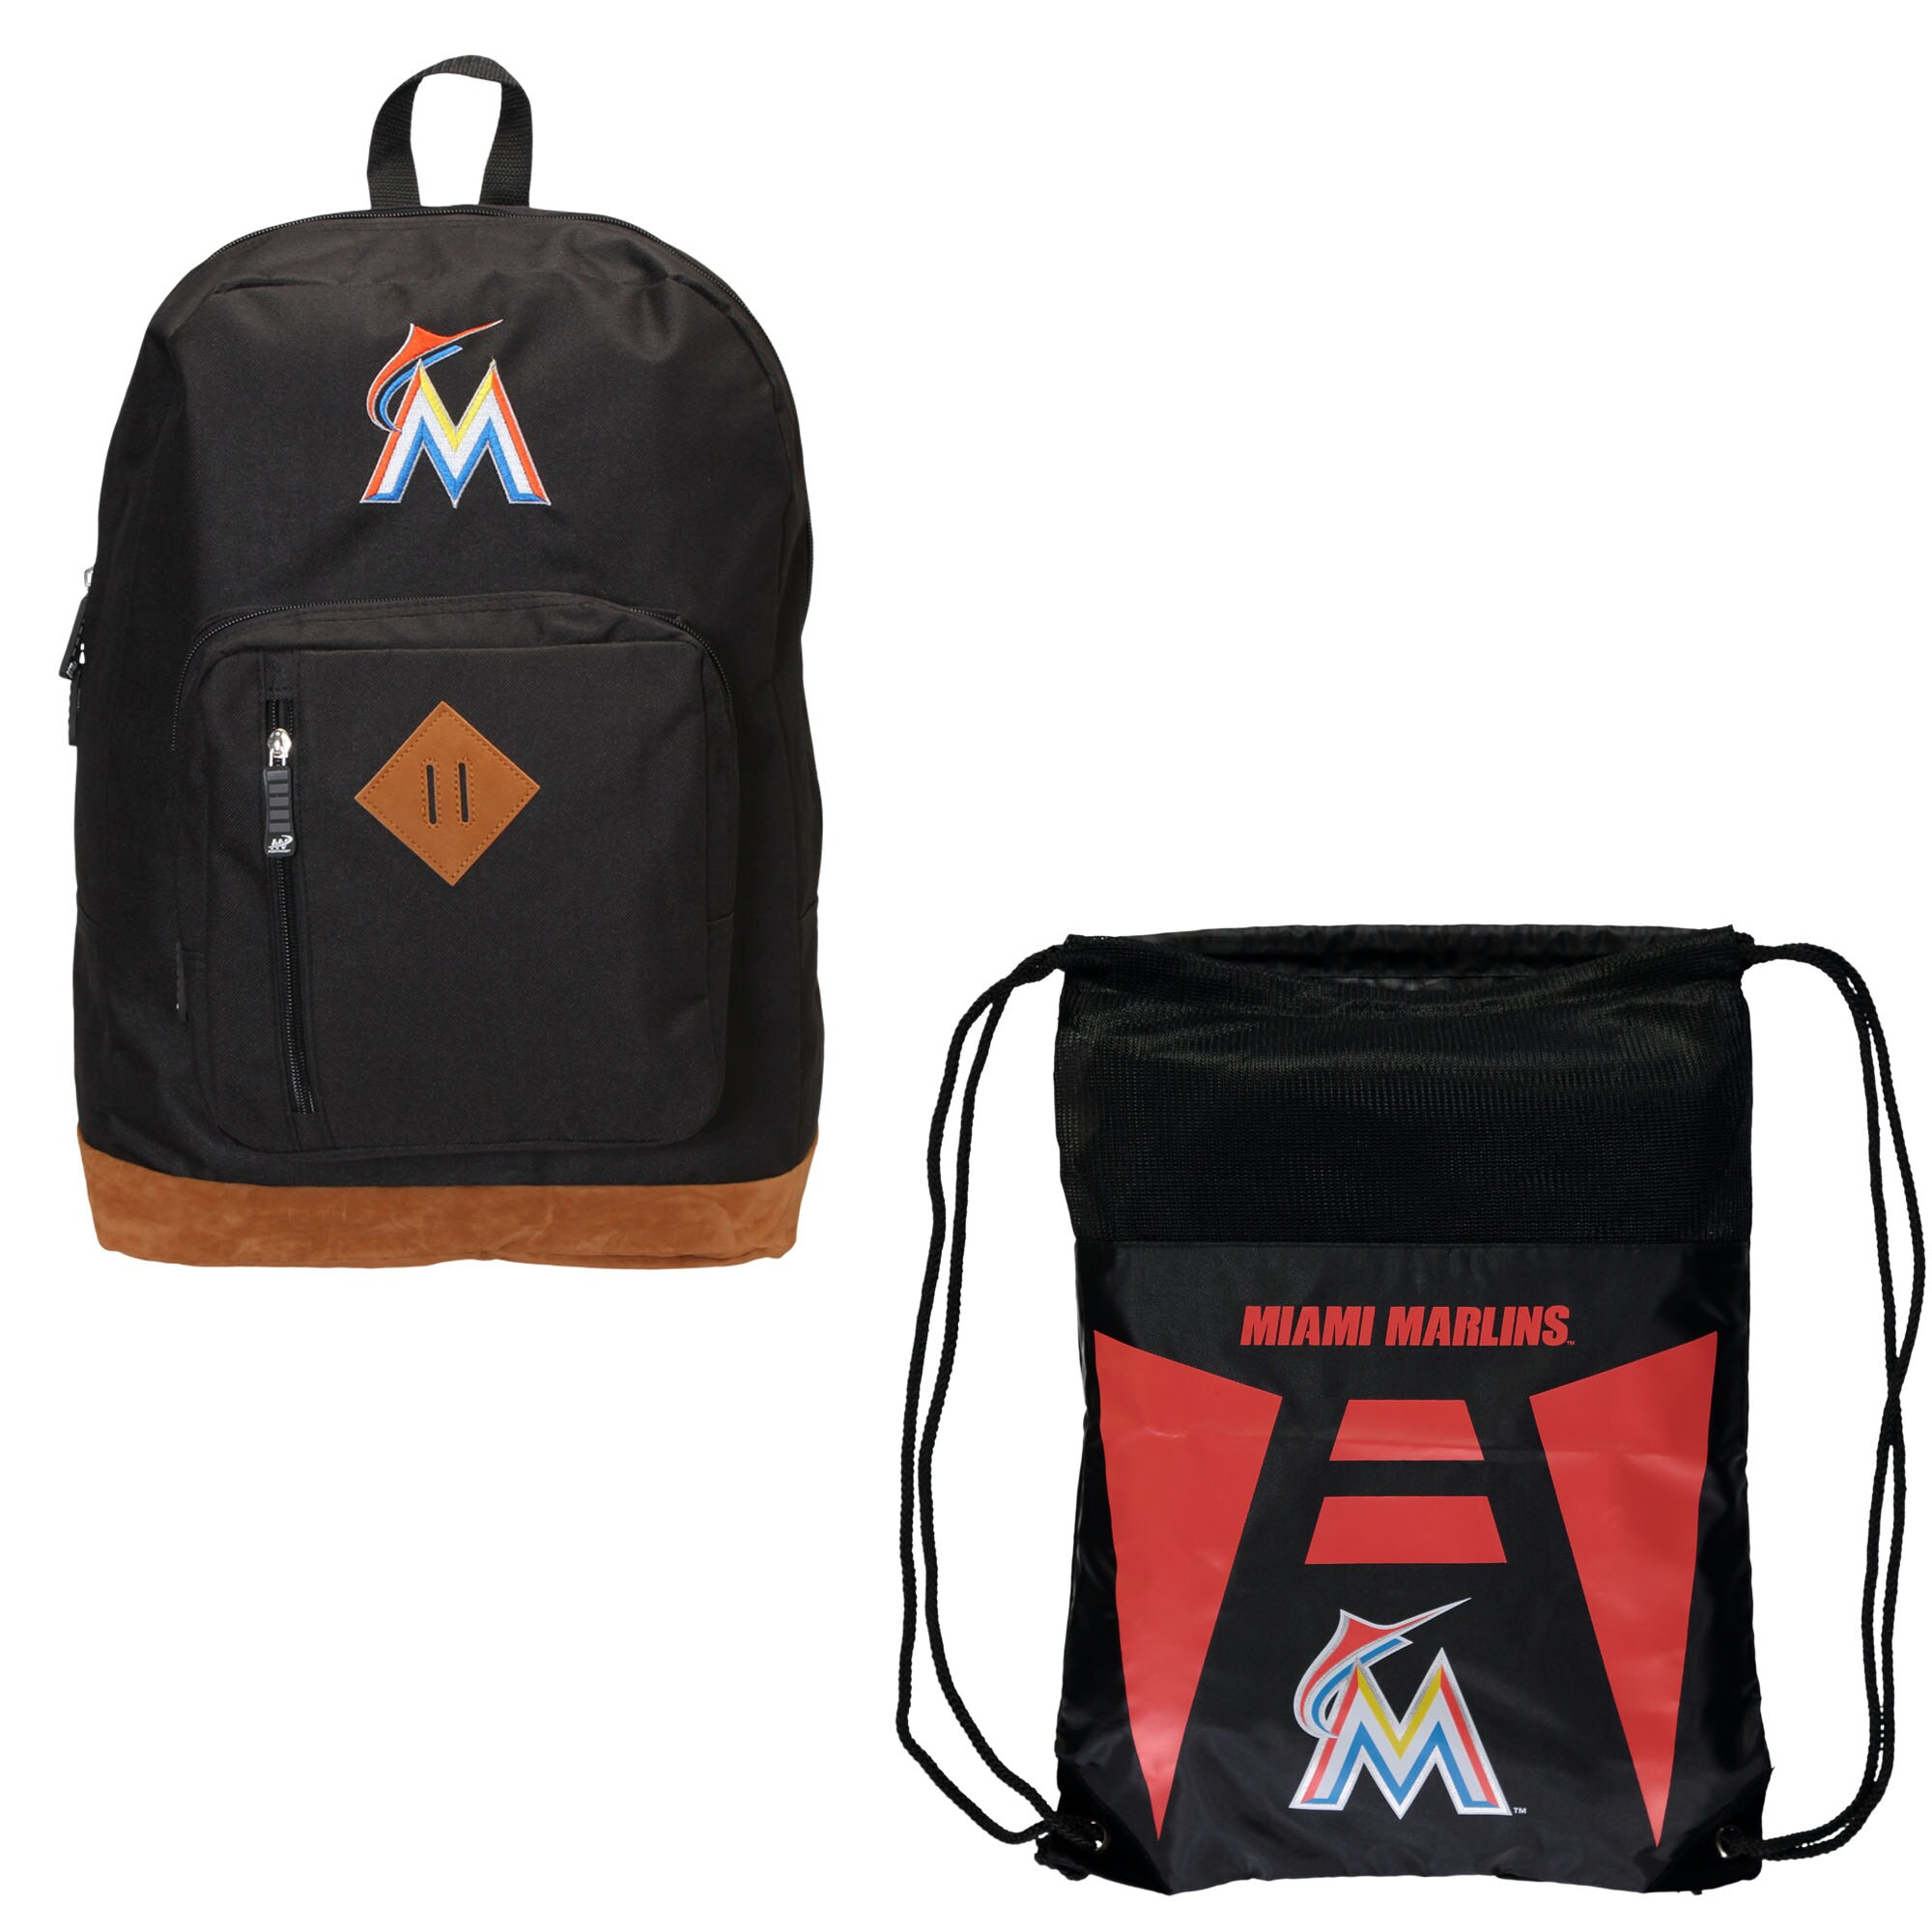 Miami Marlins The Northwest Company Double Down Backpack Set